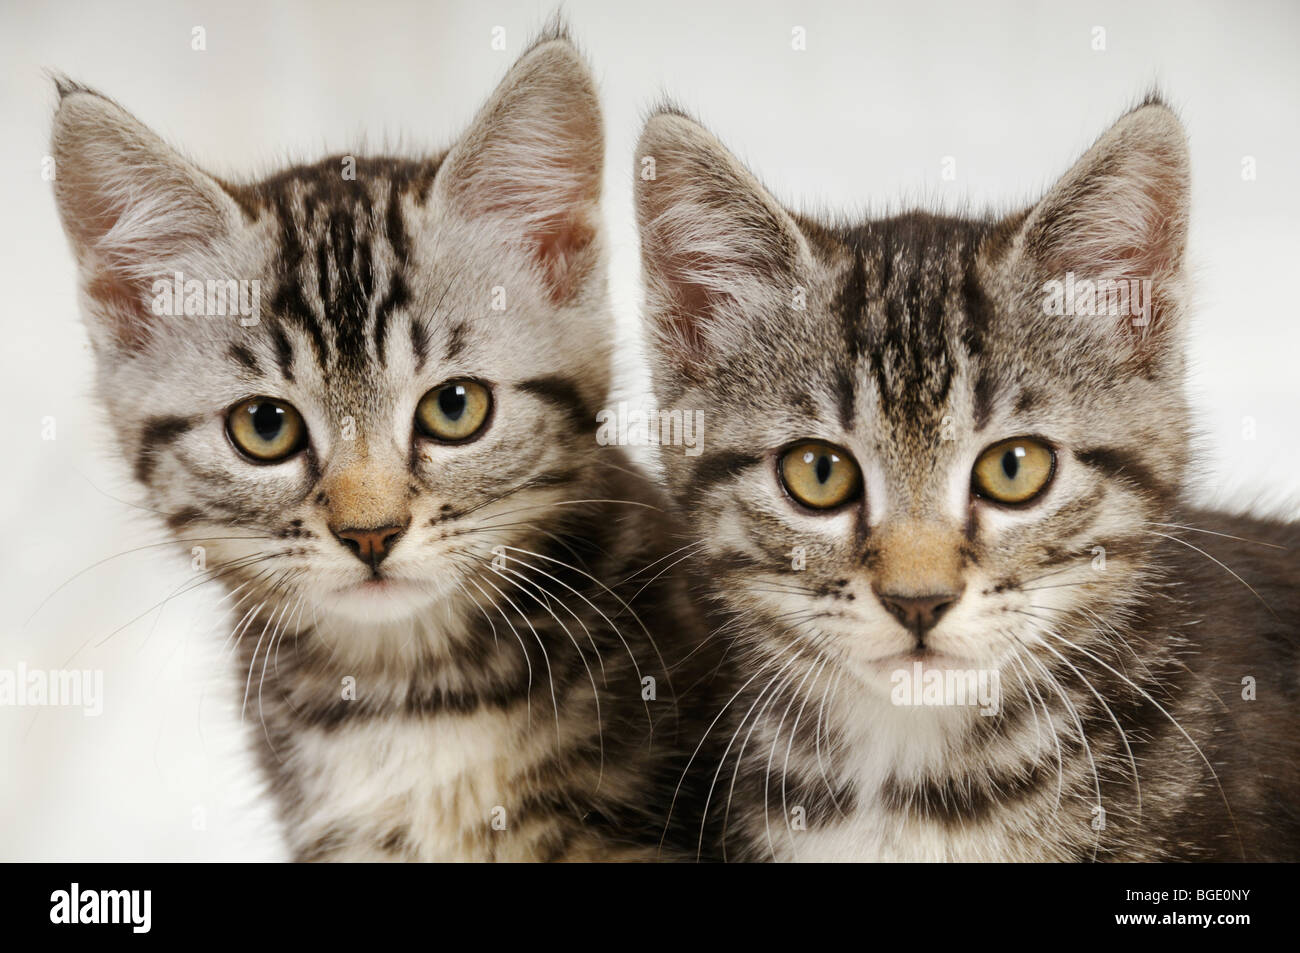 Stock photo of two kittens staring straight ahead at the camera. - Stock Image